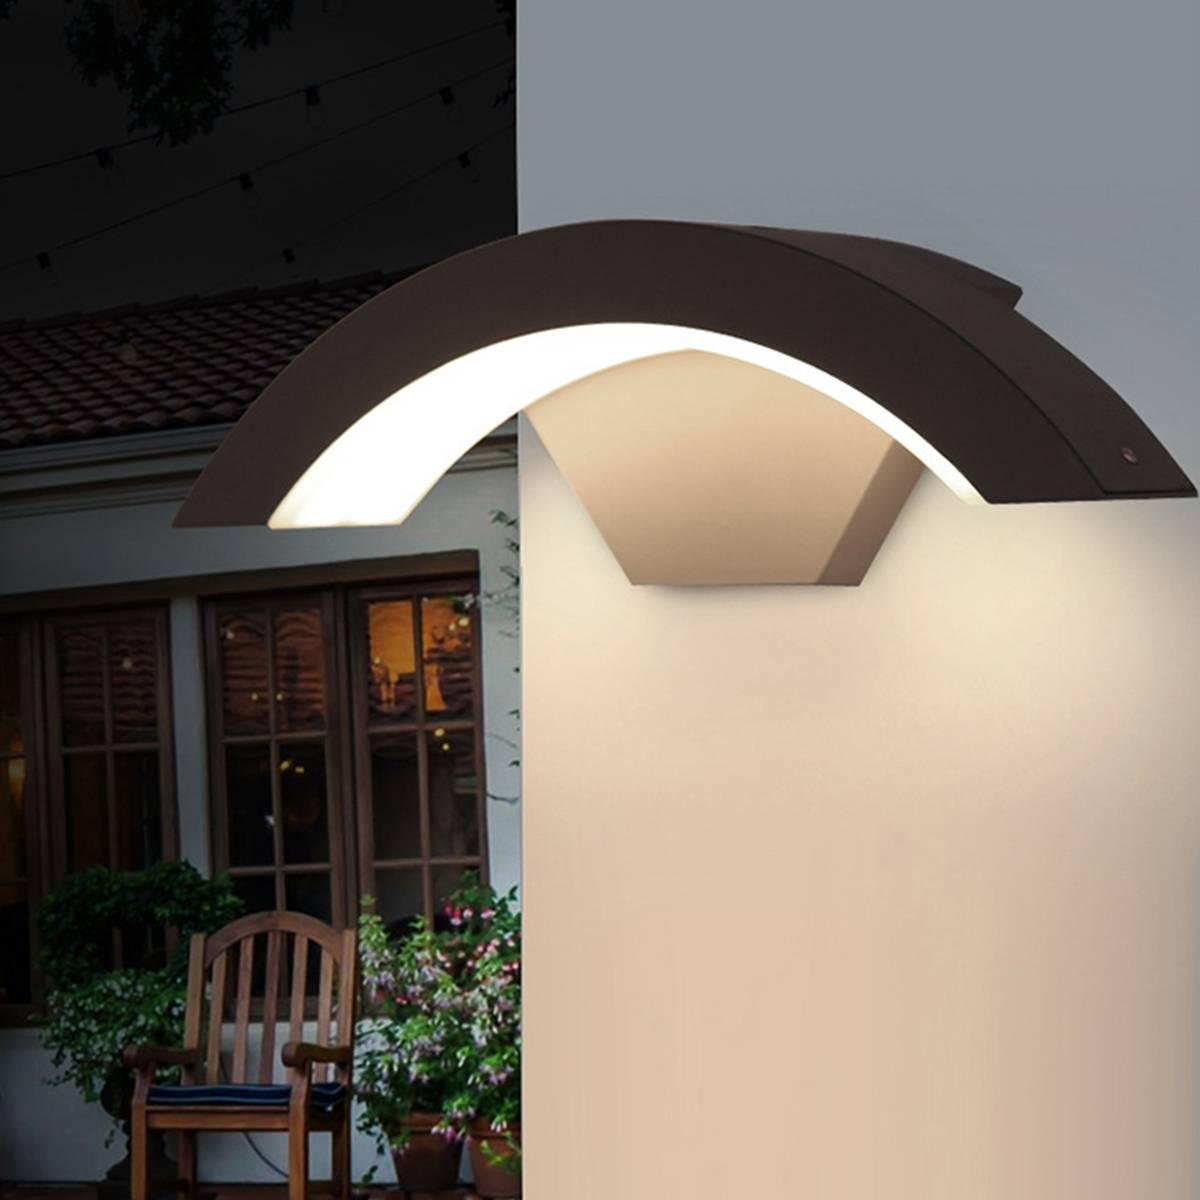 Smuxi 15W 220V Wall Light Outdoor Waterproof IP54 LED Wall Lamp Garden Yard Porch Outdoor Lighting Lamp Stylish Contemporary